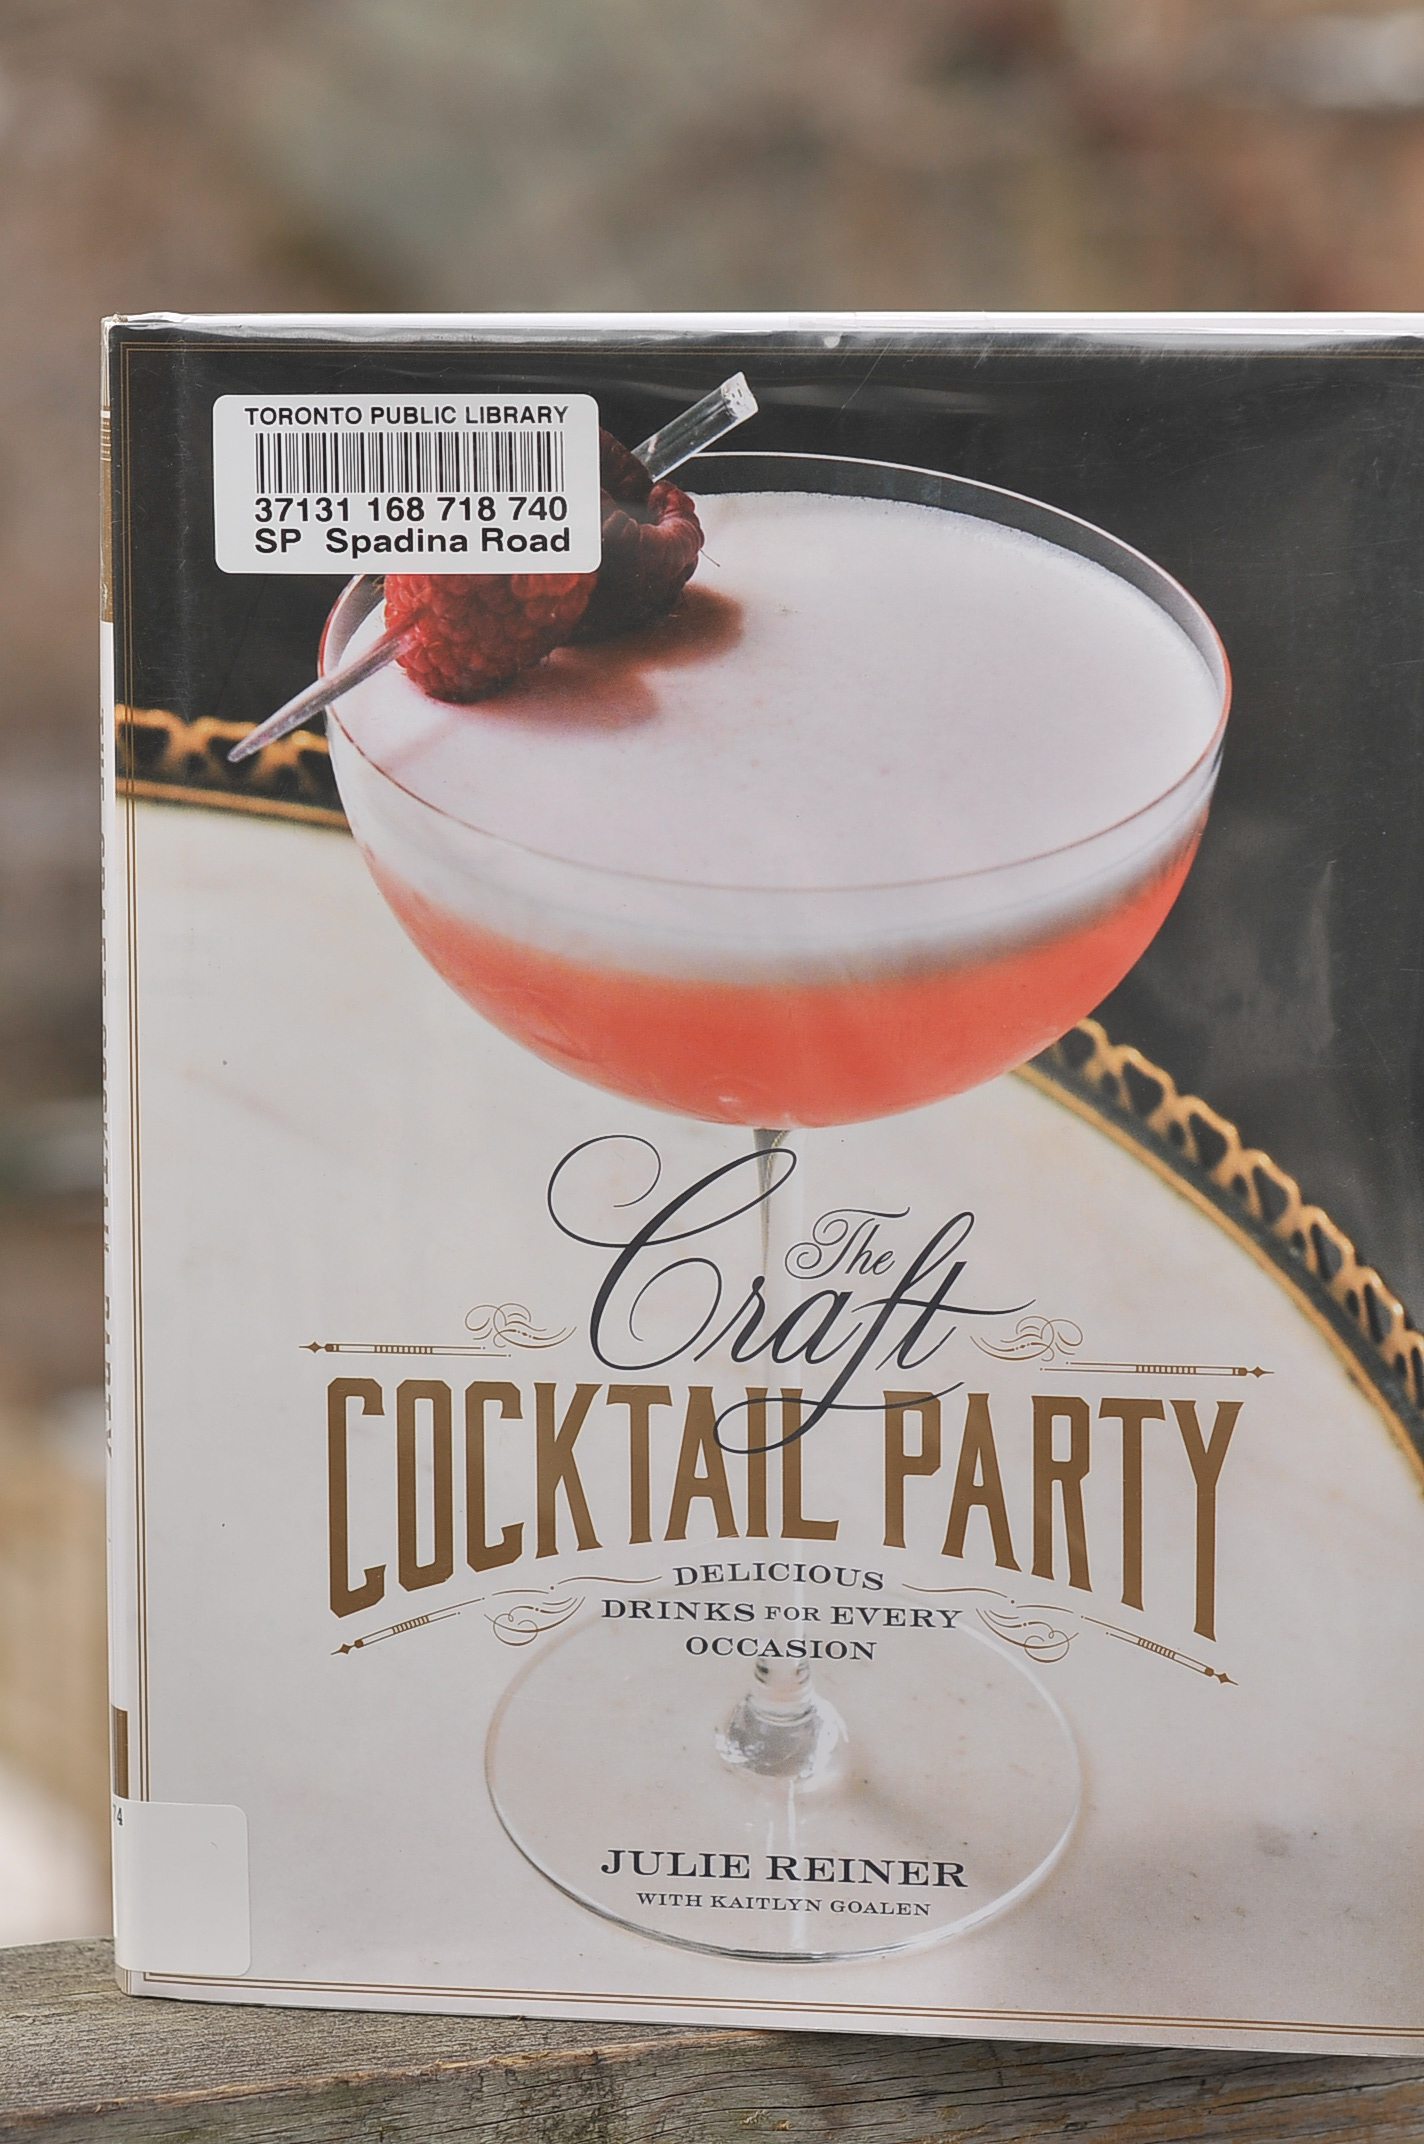 6f4a47eb9bbb1 The Year in Books: January with The Craft Cocktail Party by Julie ...